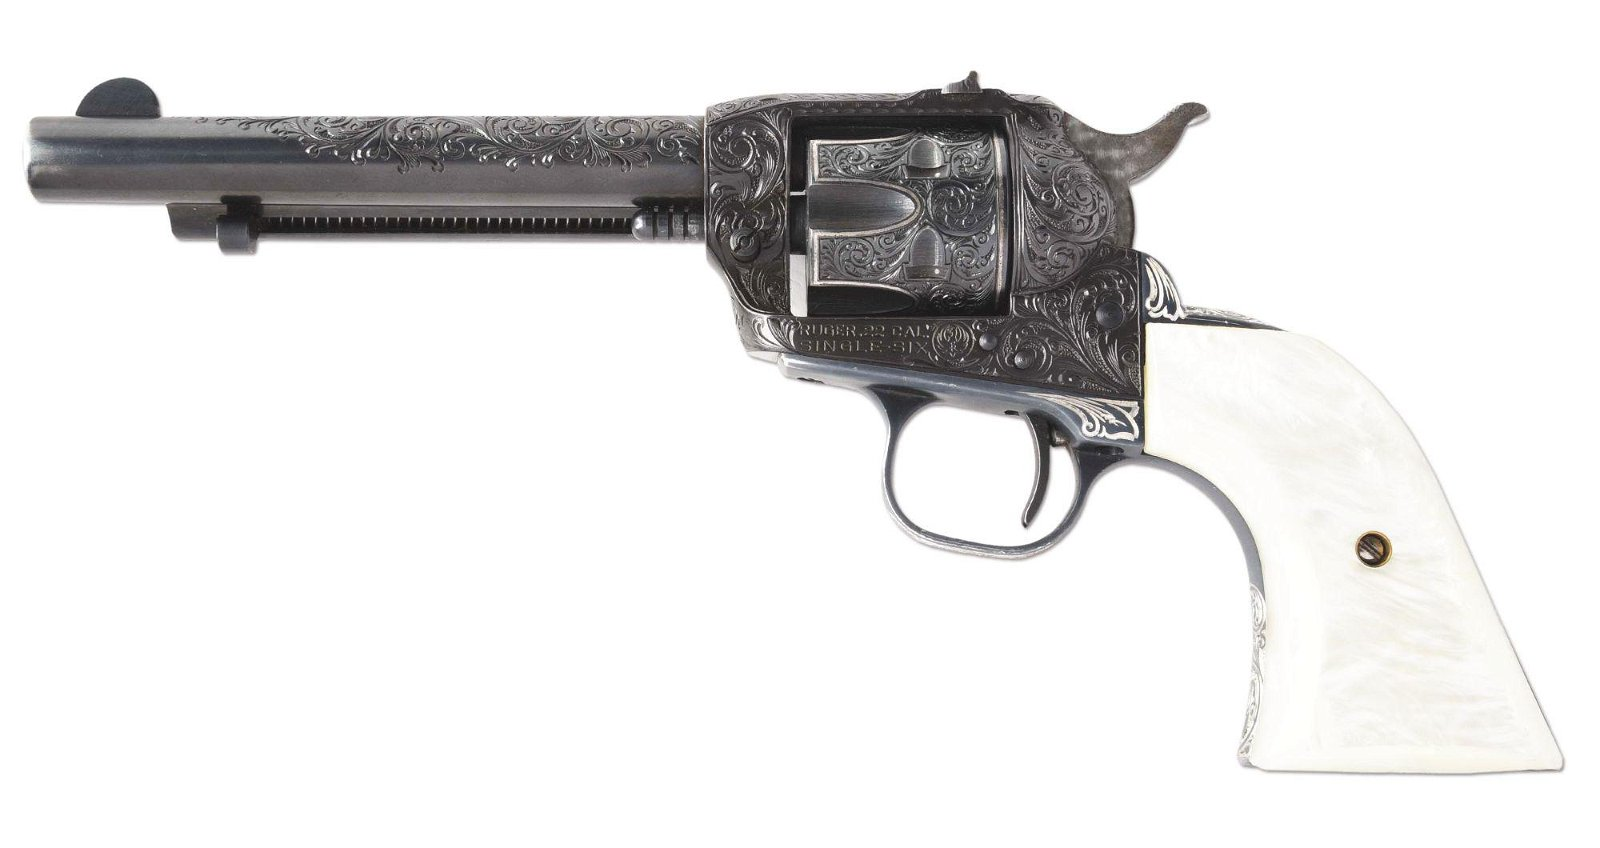 (M) RUGER SINGLE SIX .22 REVOLVER